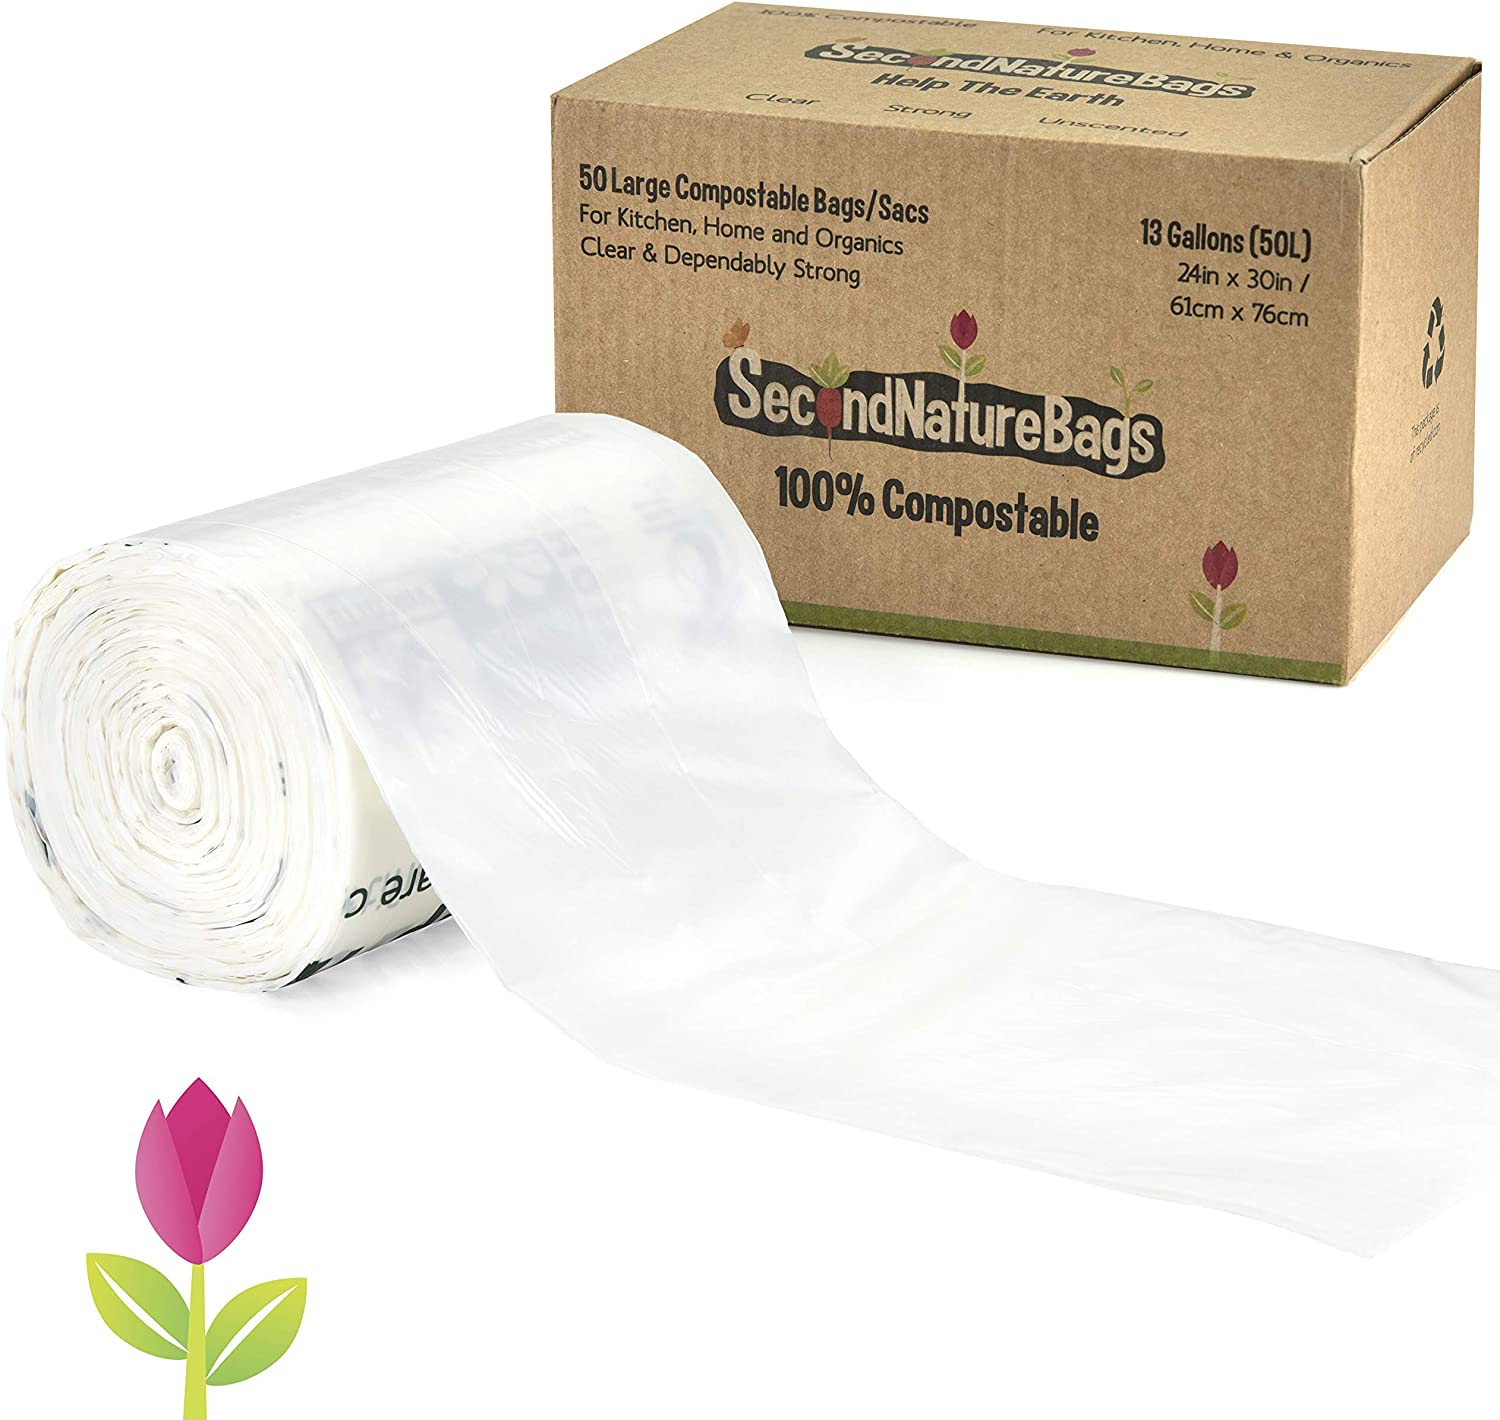 Second Nature Bags, Premium Certified 100% Compostable Biodegradable, 13 Gallon, 50 Bags, Large Kitchen Food Scraps & Home Trash Bags